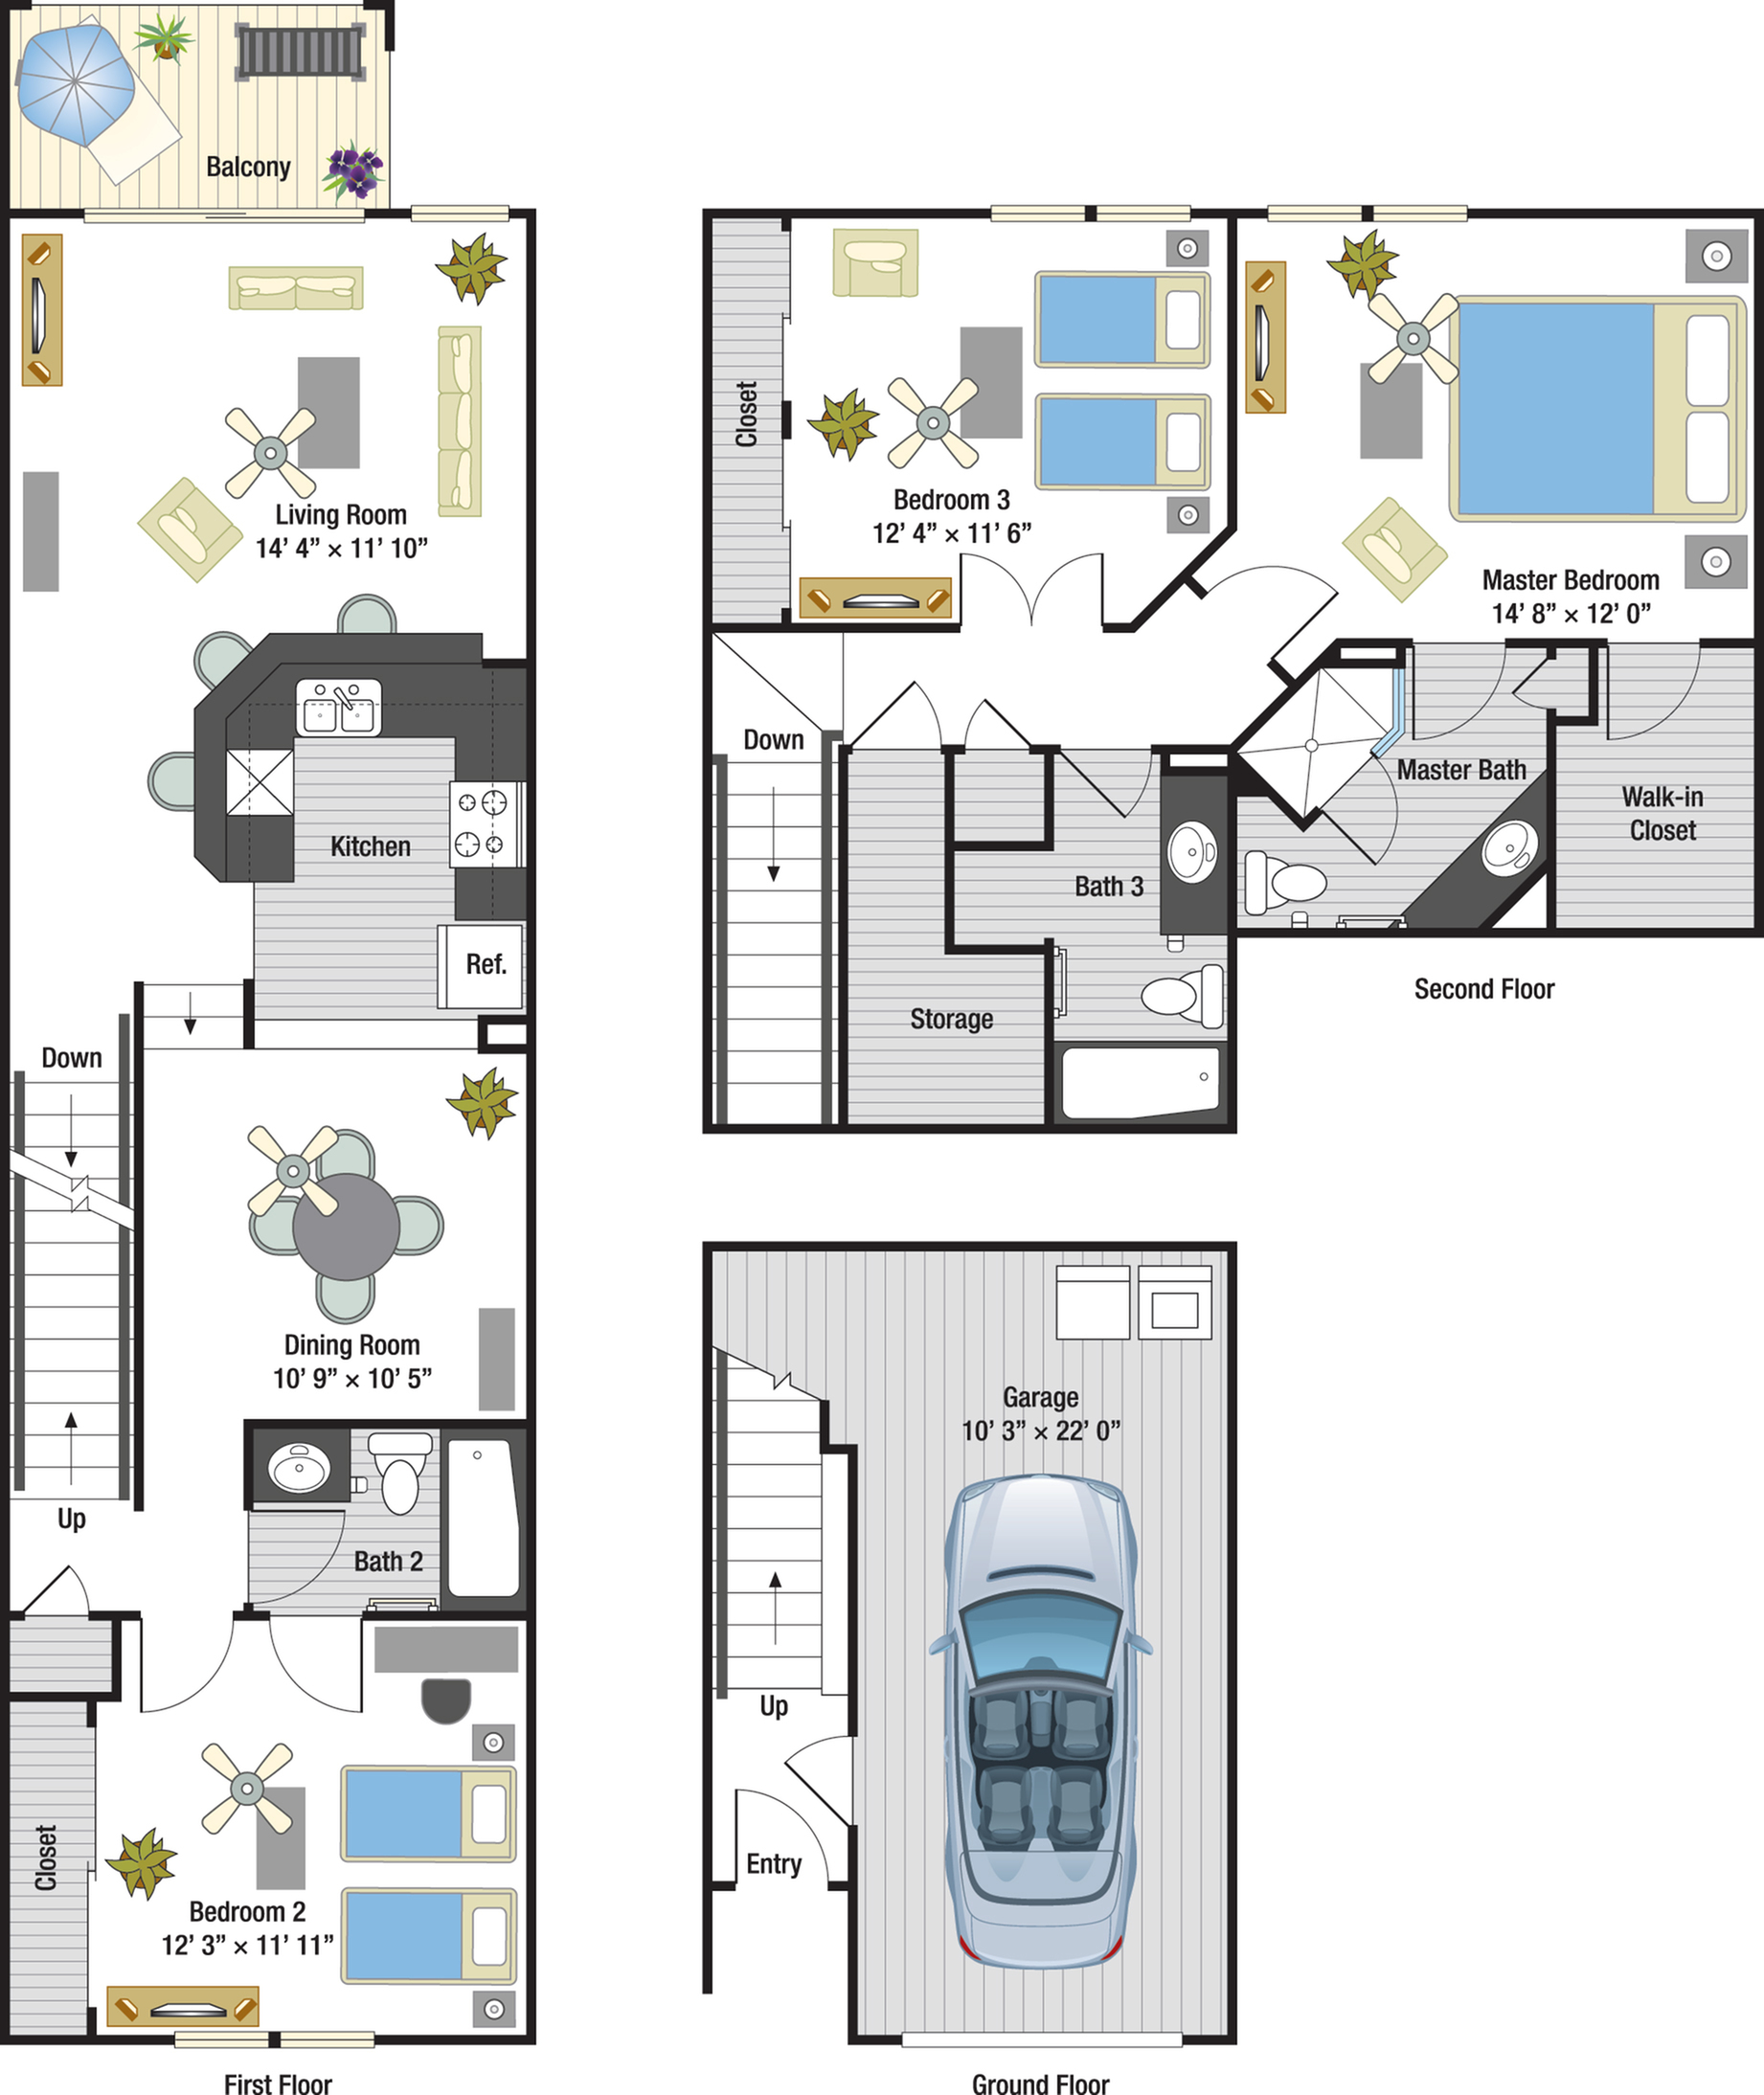 Riviera three bedroom three bathroom town home with single car garage floor plan